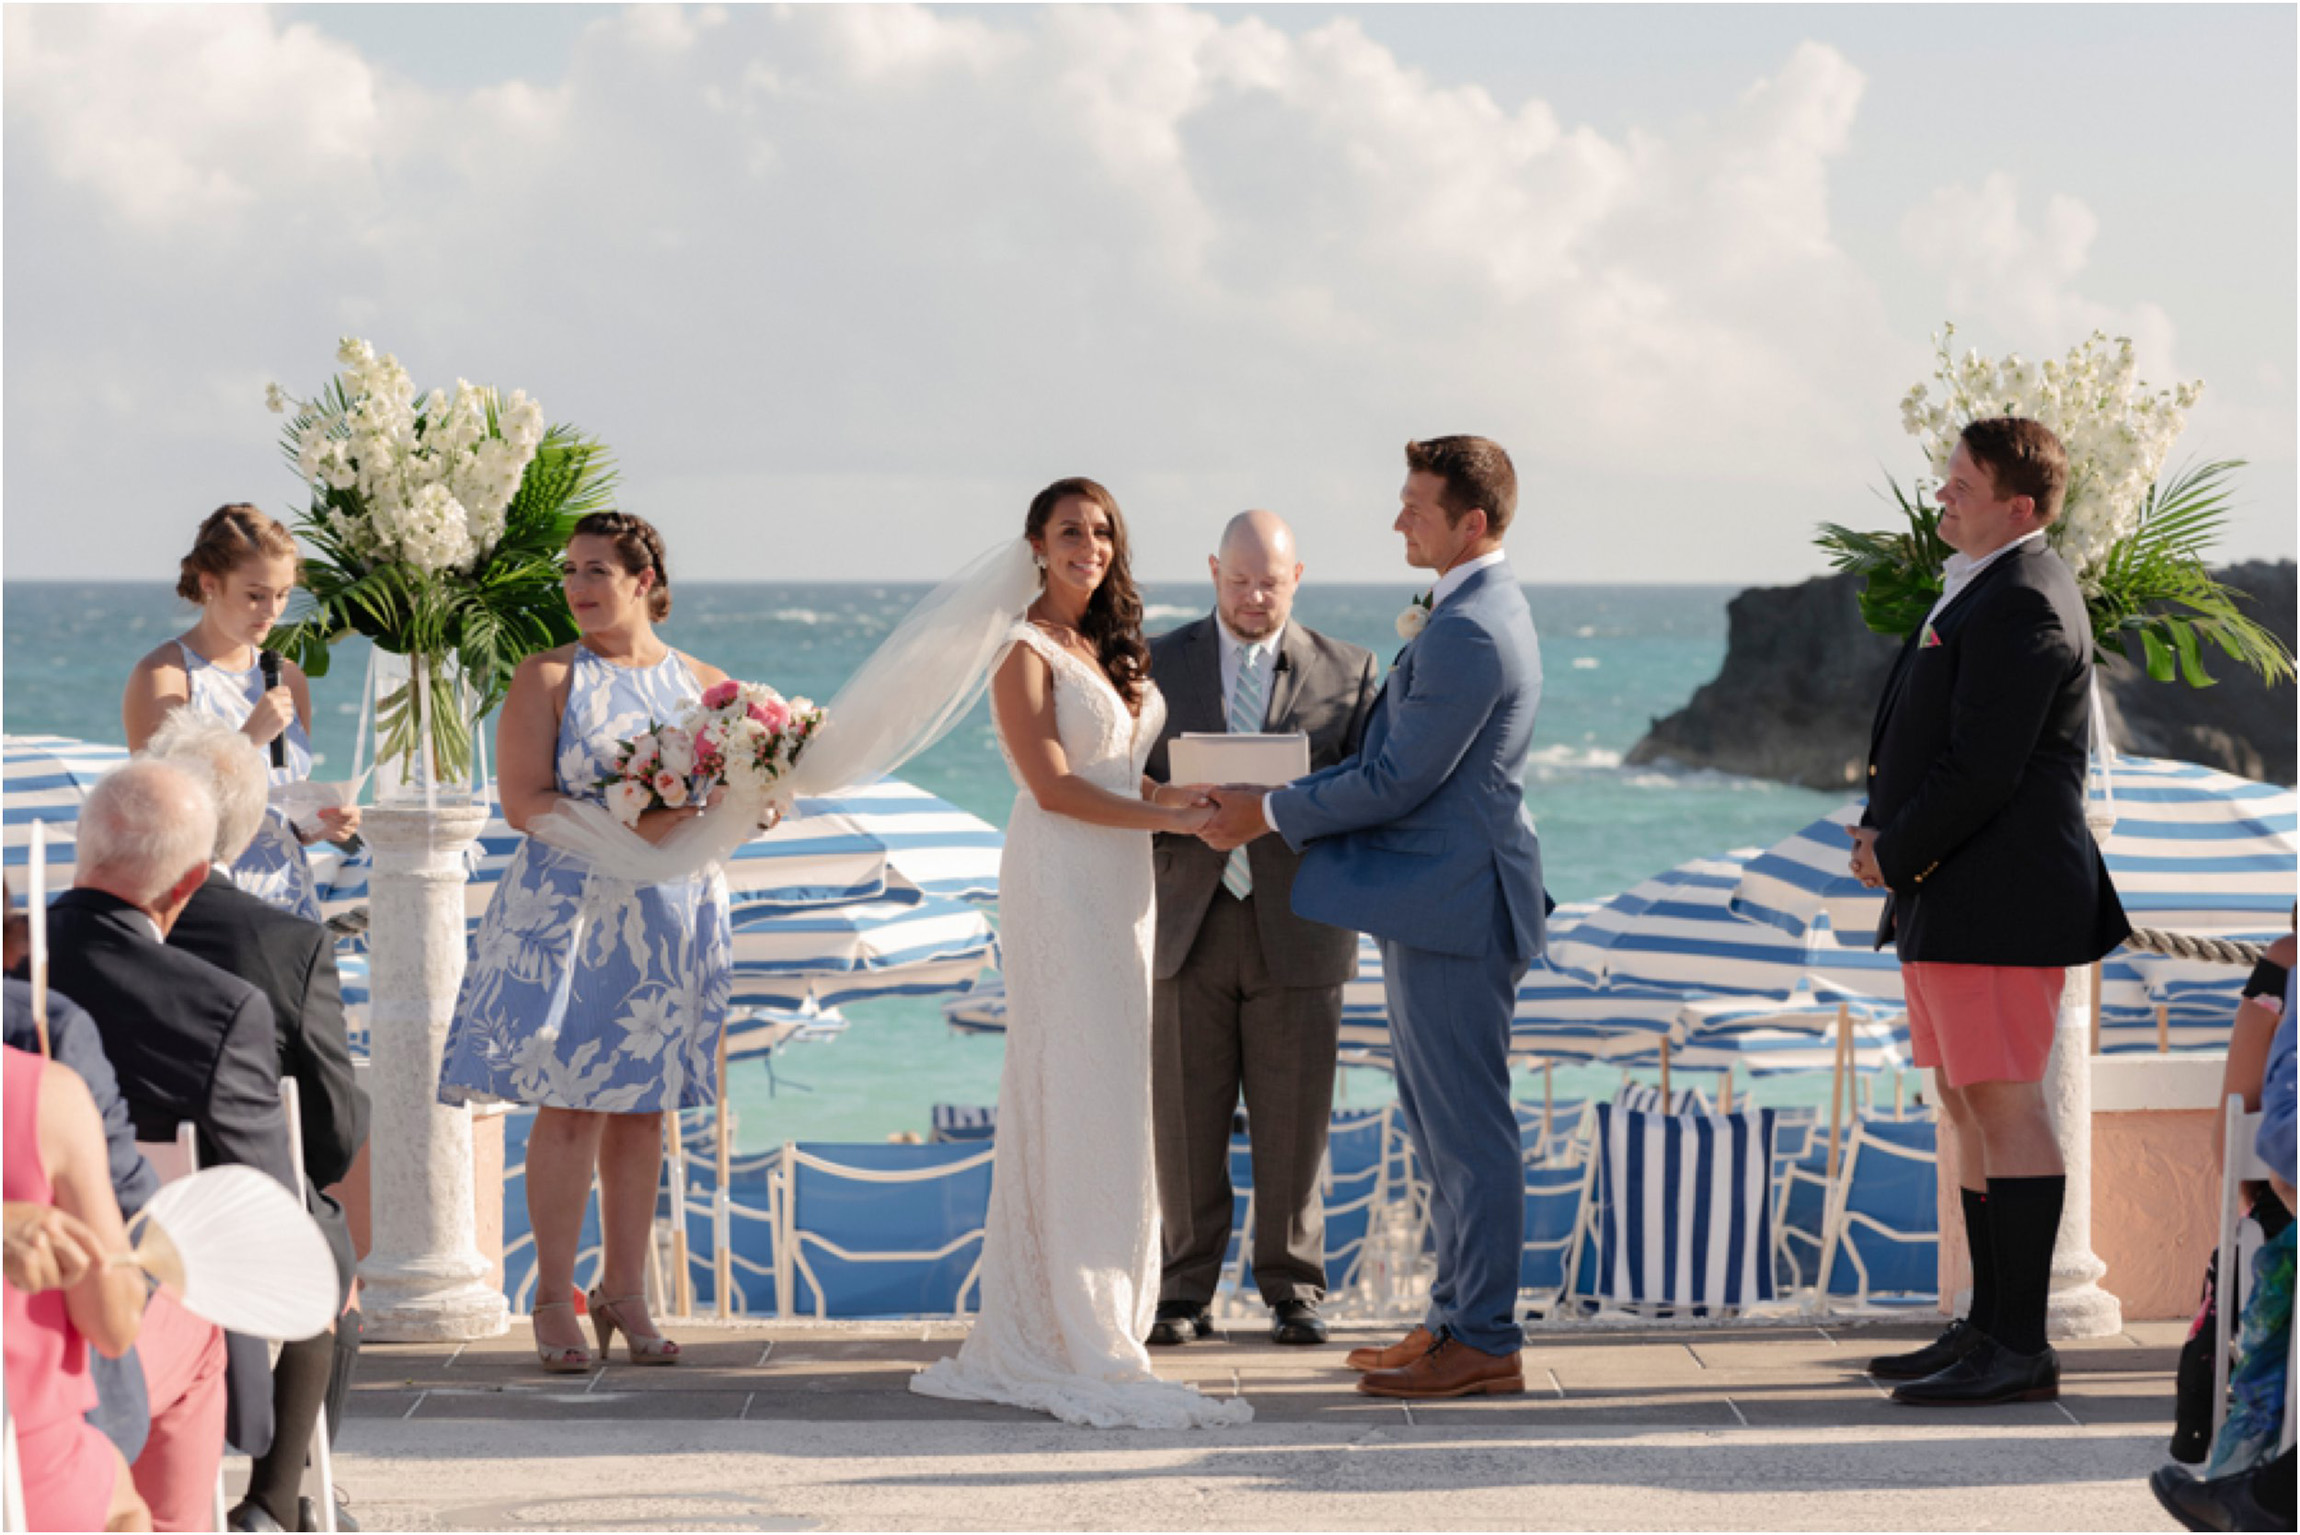 ©FianderFoto_Bermuda Wedding Photographer_Fairmont Southampton_Wedding_Anna_Thomas_050.jpg